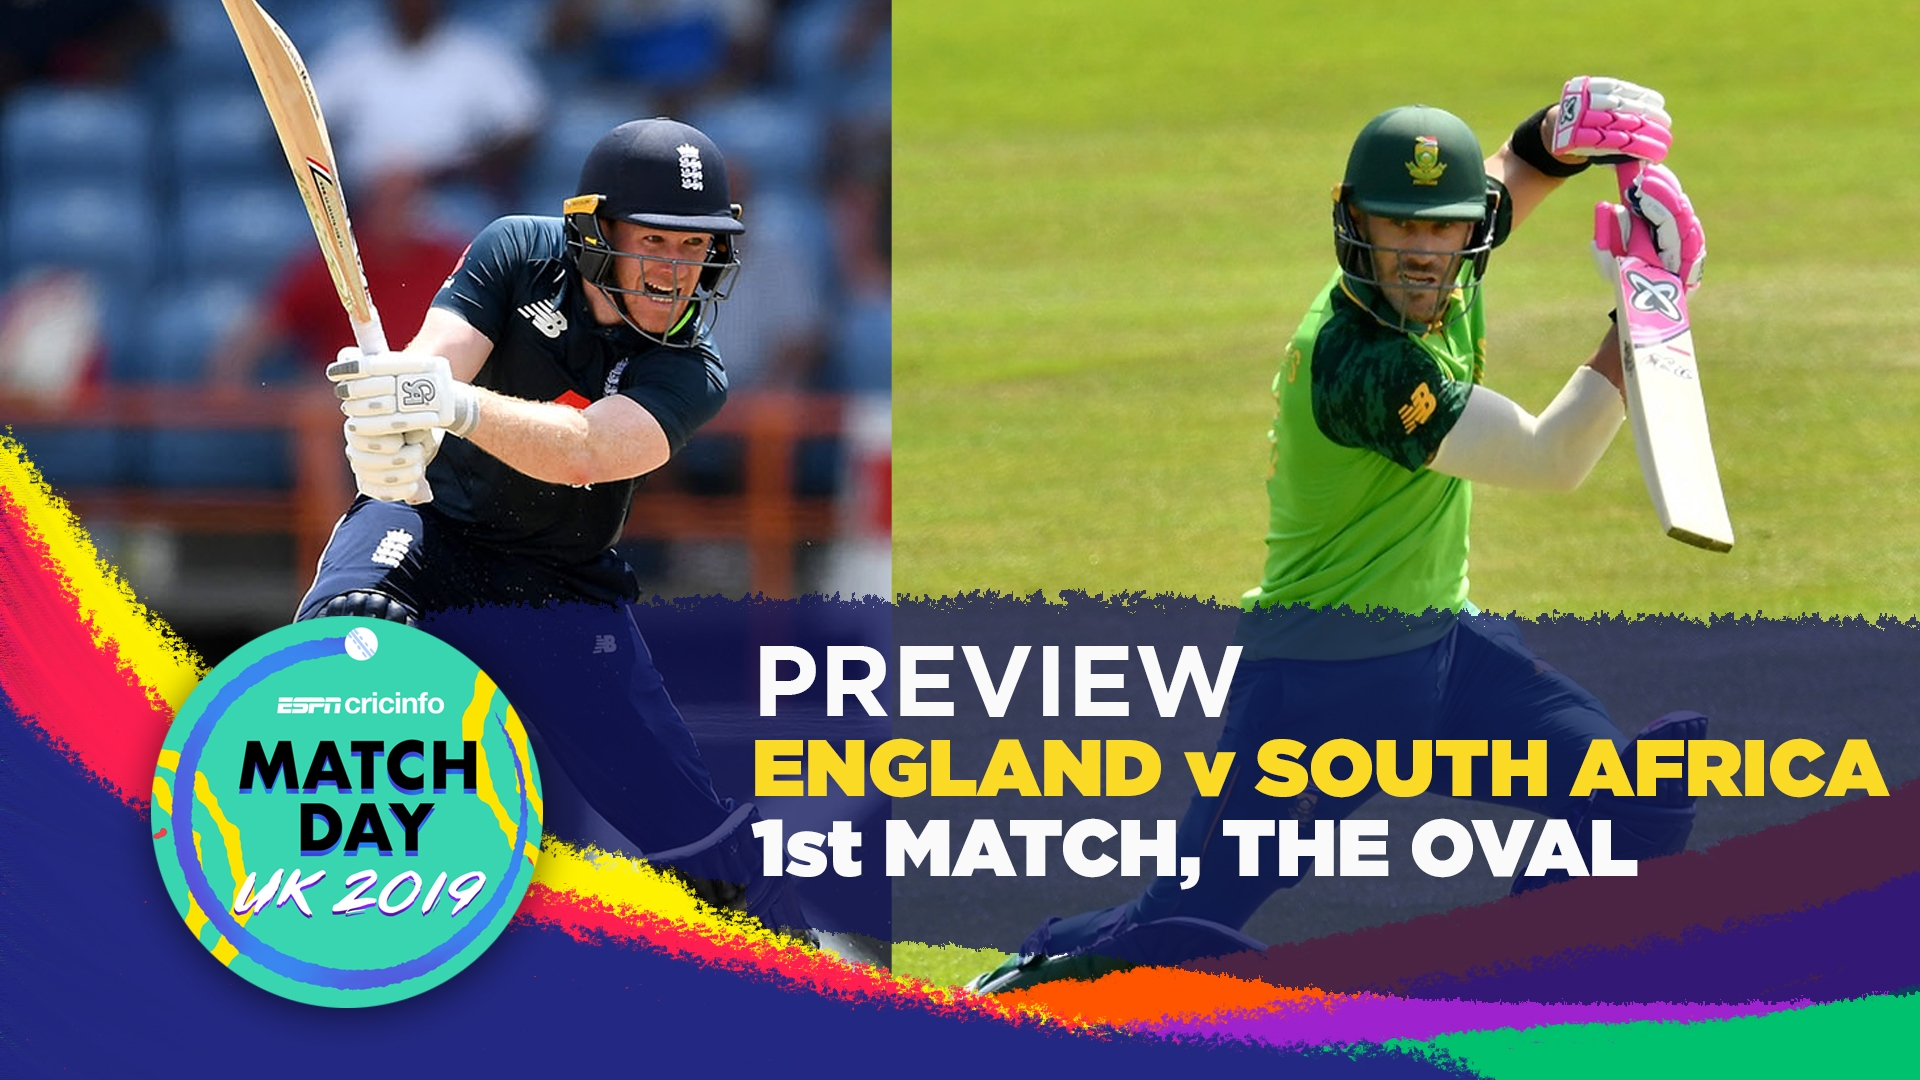 England beat South Africa by 104 runs - England vs South